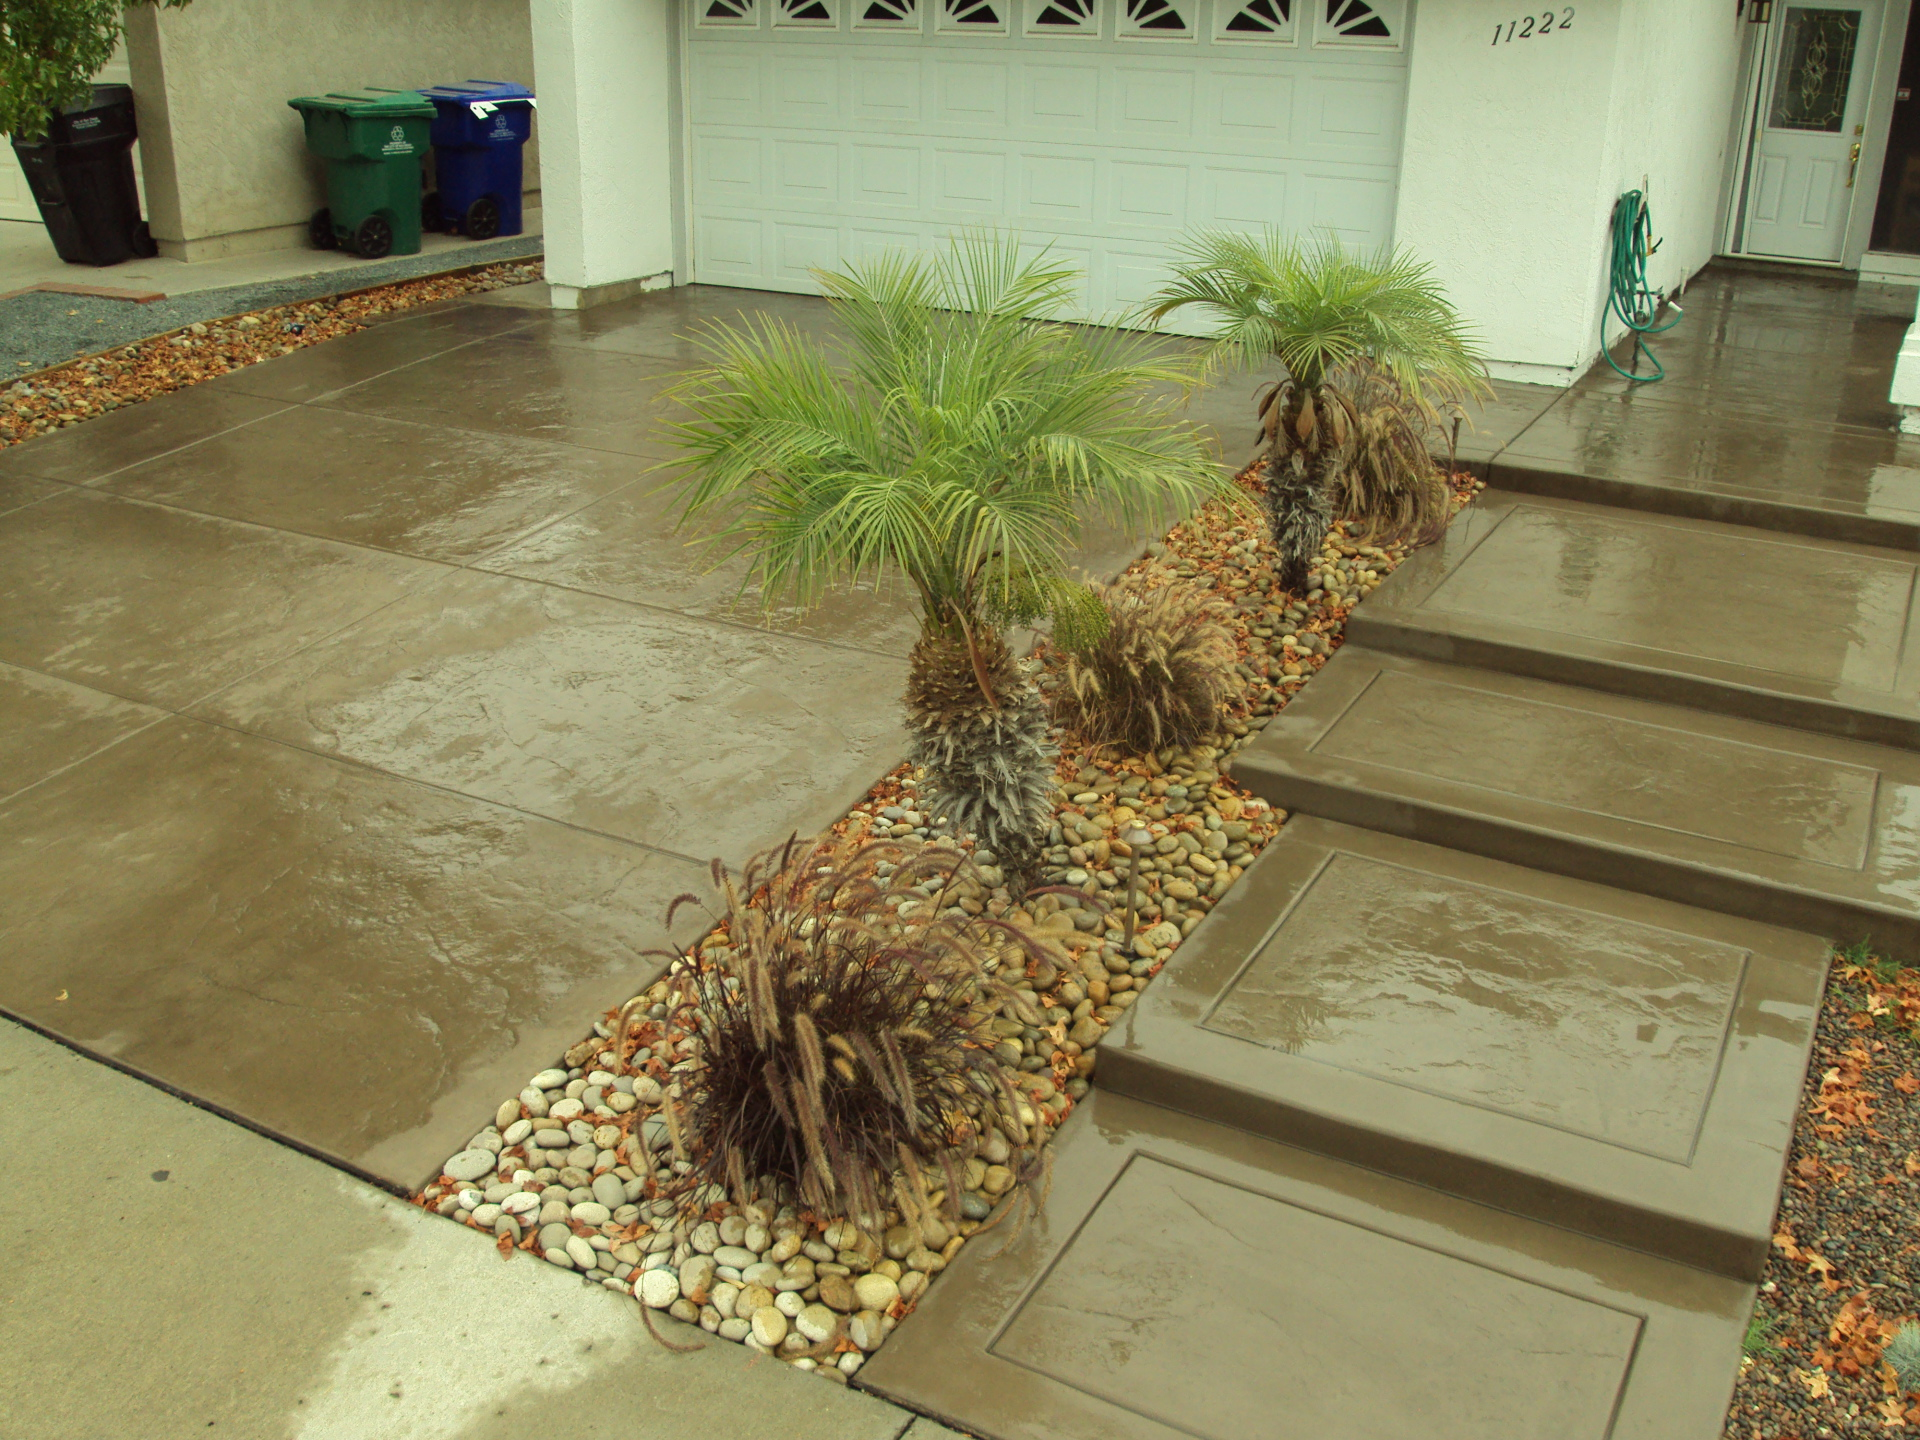 Stamped Concrete, Outdoor Kitchens chula vista, patio covers chula vista, aluminum patio covers, outdoor entertainment areas,